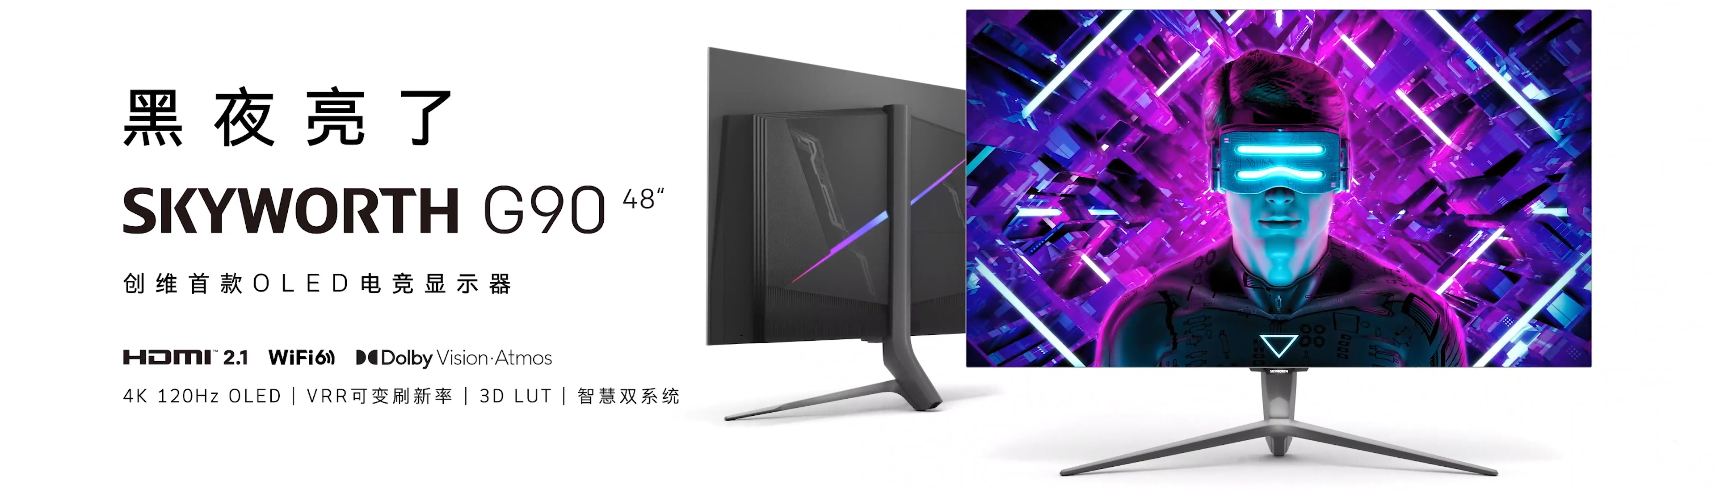 """The Skyworth G90 48"""" 4K OLED gaming monitor/TV (F48G9U) is awaiting first deliveries on July 15"""